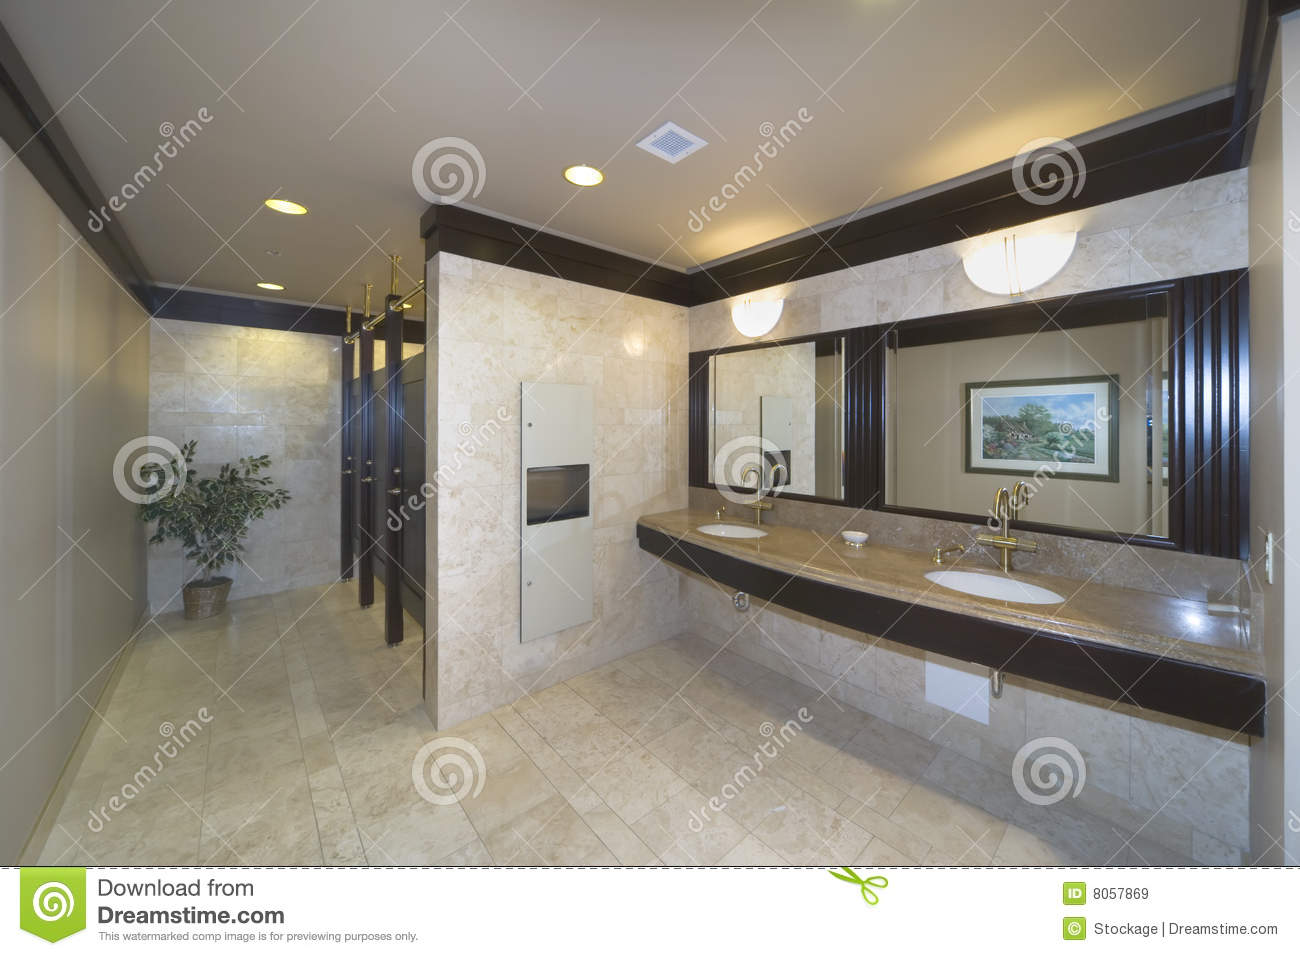 Washroom In An Office Building Royalty Free Stock Images